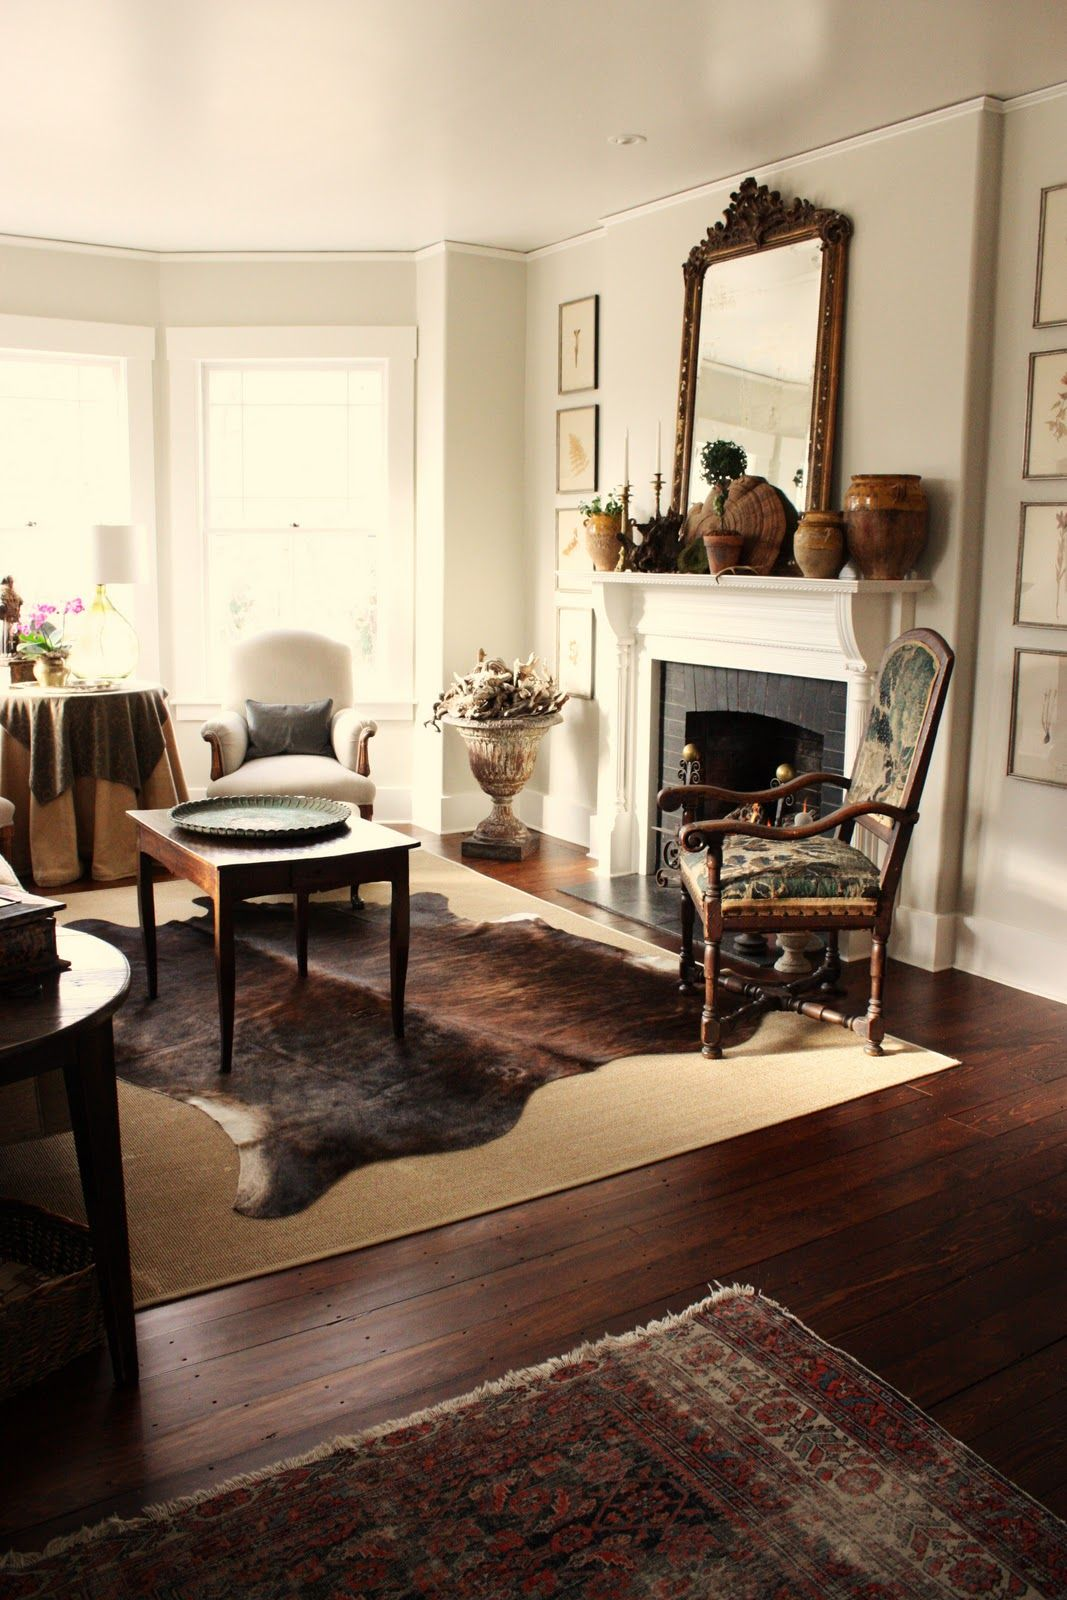 Love this home decor mix Hide rug living room, Cowhide